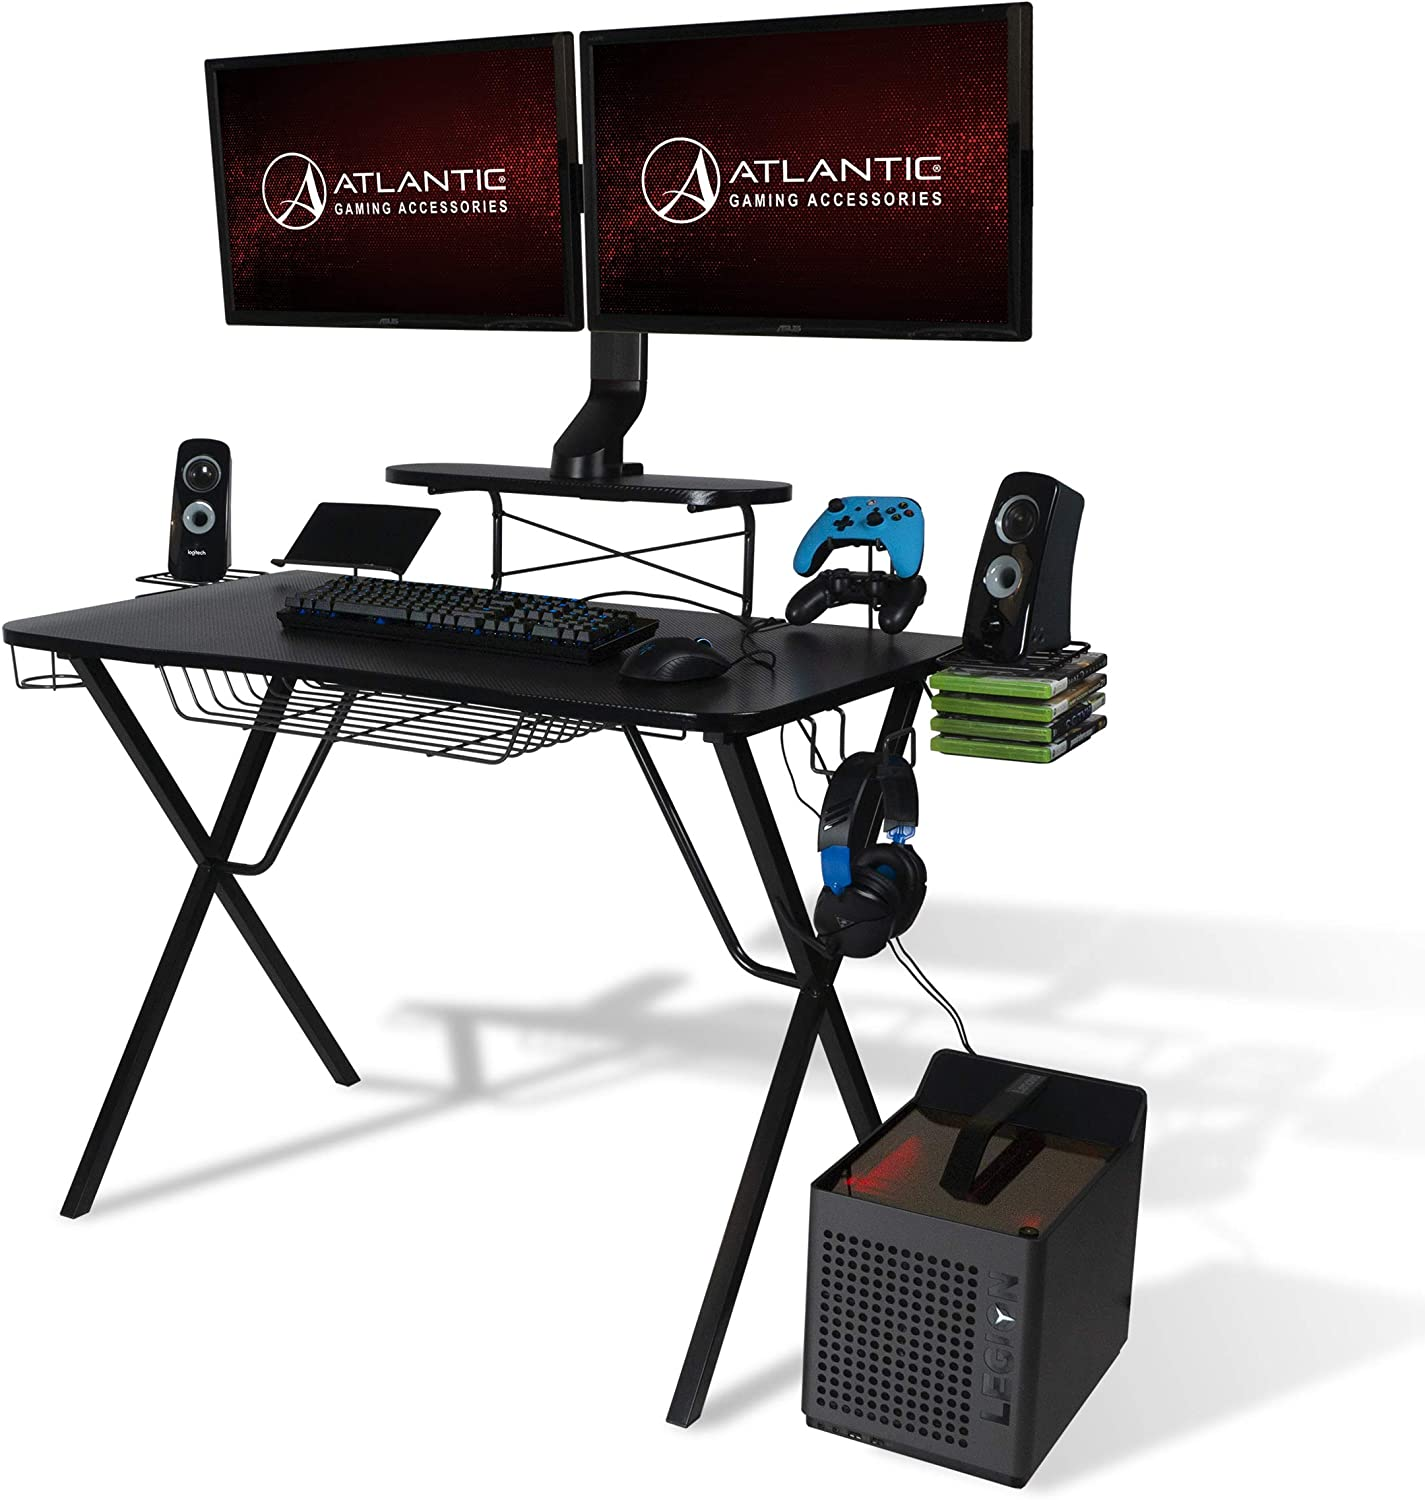 Atlantic Gaming Original Gaming-Desk Pro - Curved-Front, 10 Games, Controller, Headphone & Speaker Storage, 40.25x23.5 inch Curved Front Desktop, Enhanced Larger Design: Furniture & Decor